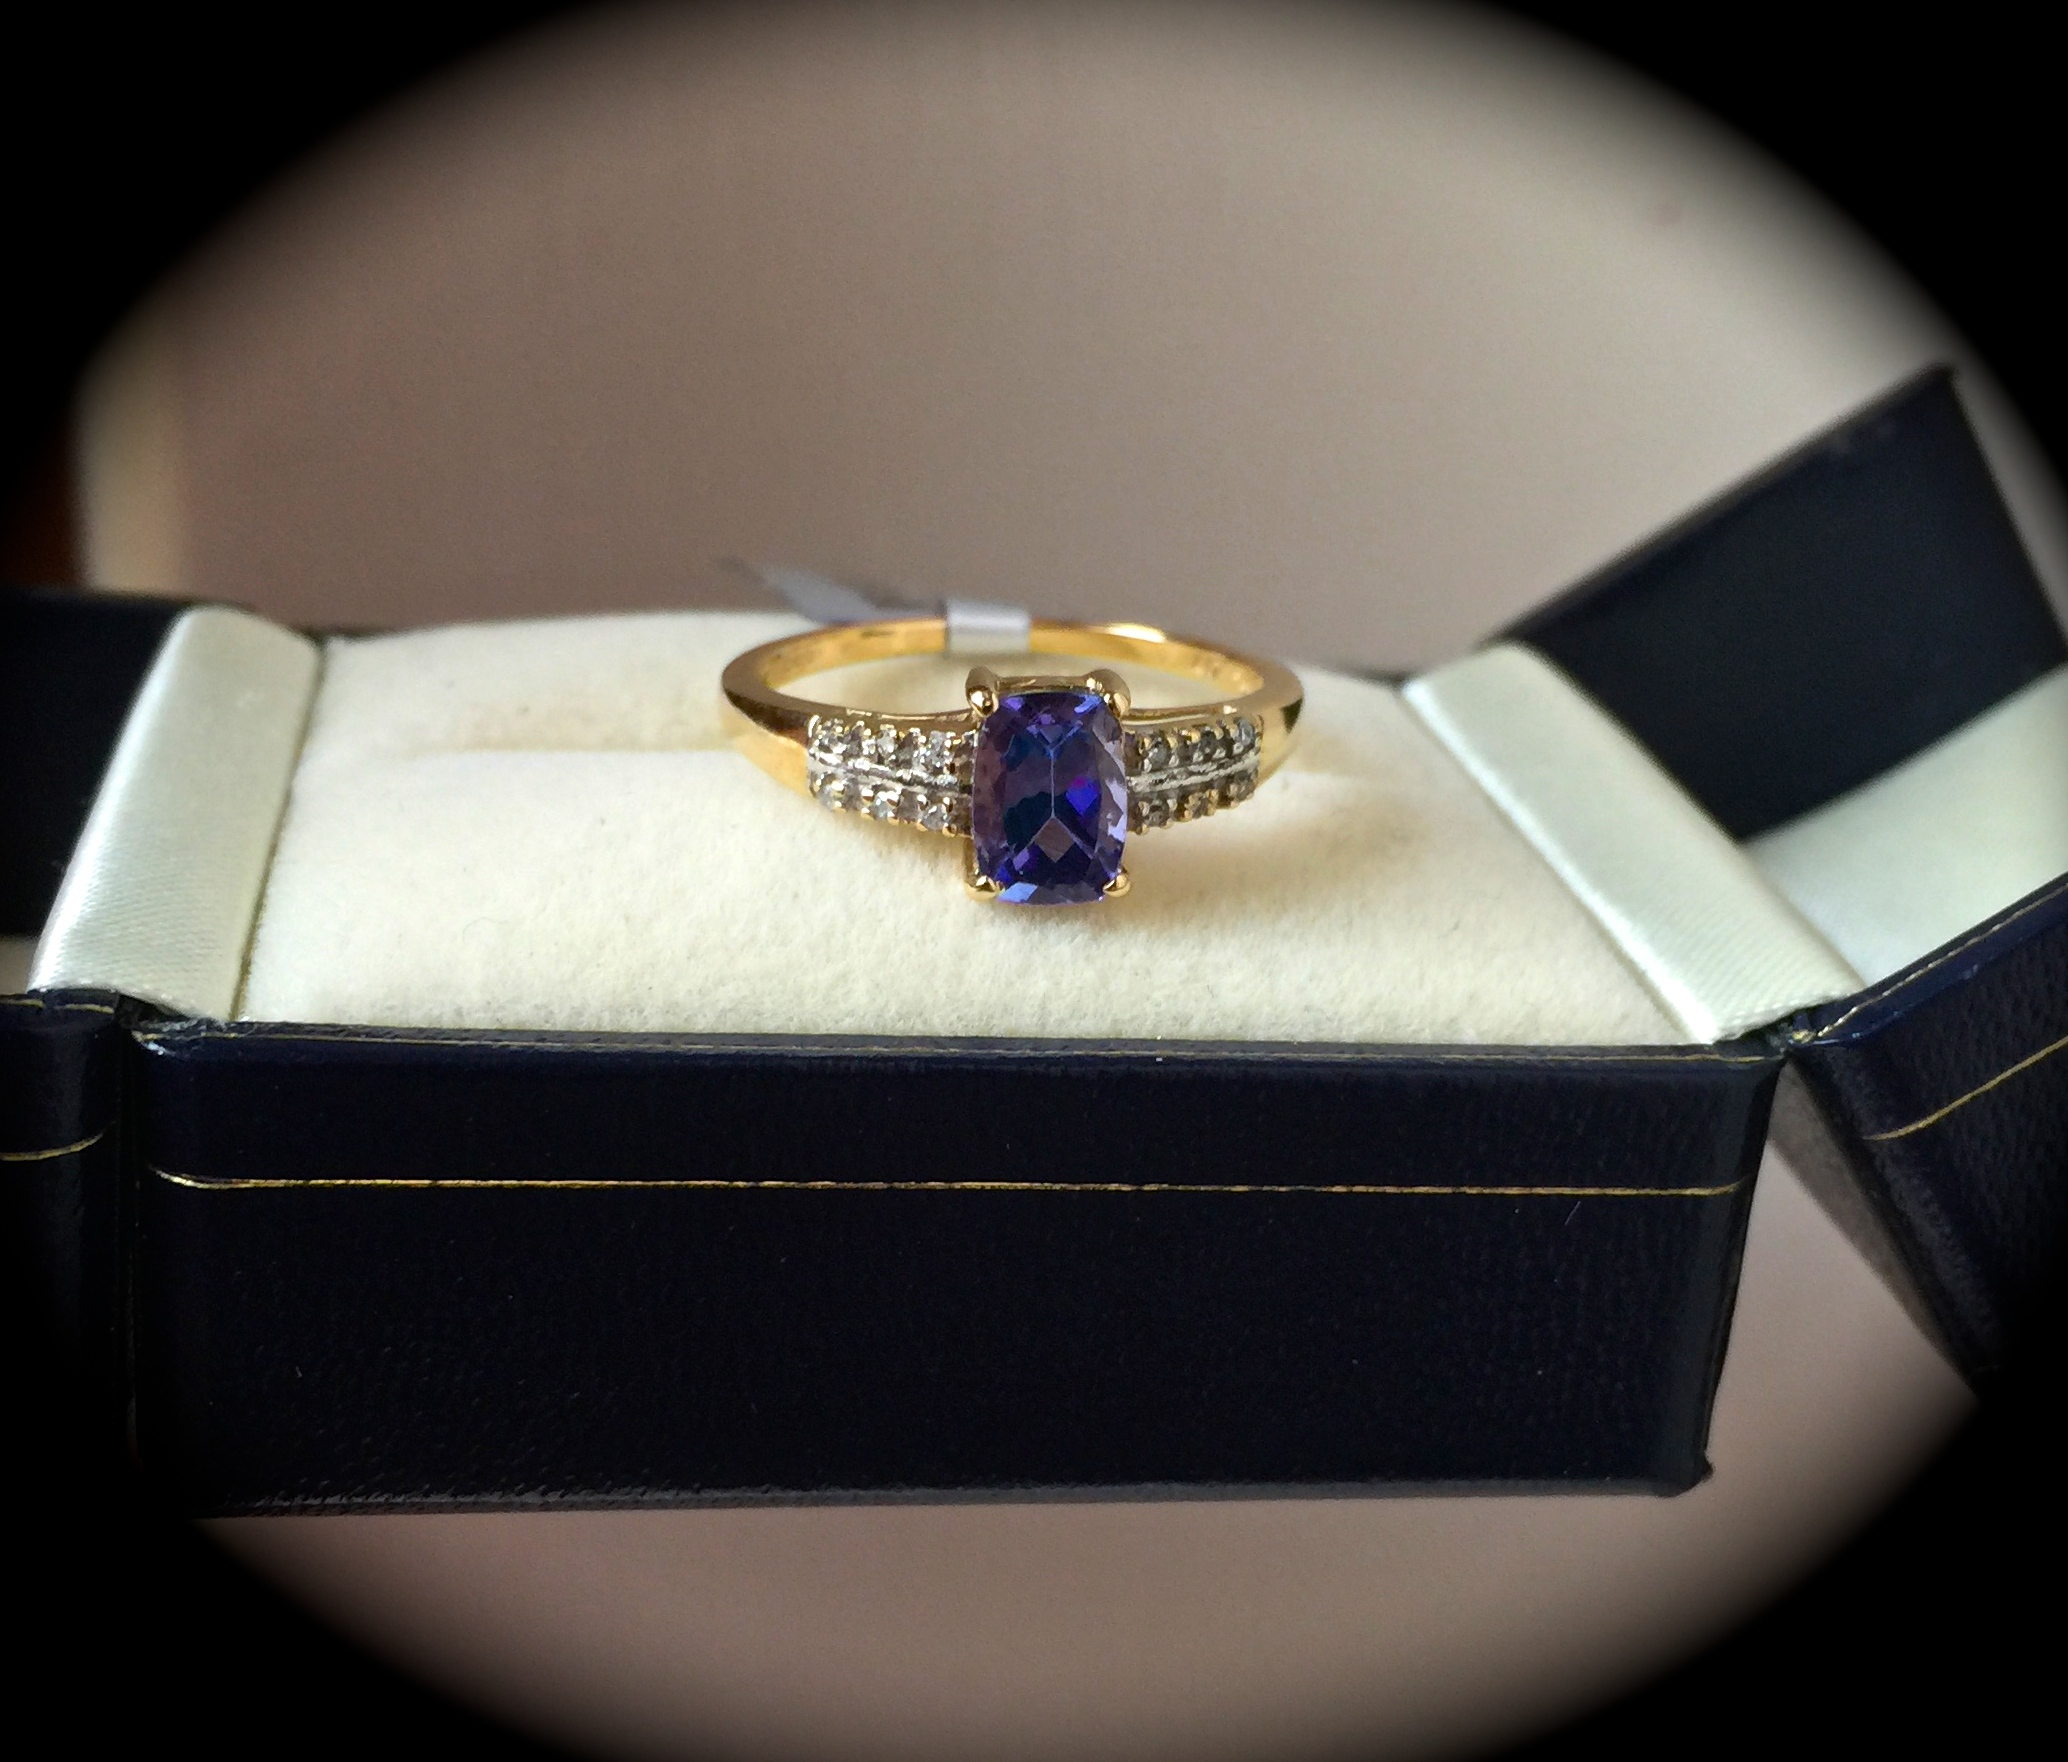 cts fullxfull no investment listing shipping il tanzanite aaa inclushion quality grade natural shape oval size